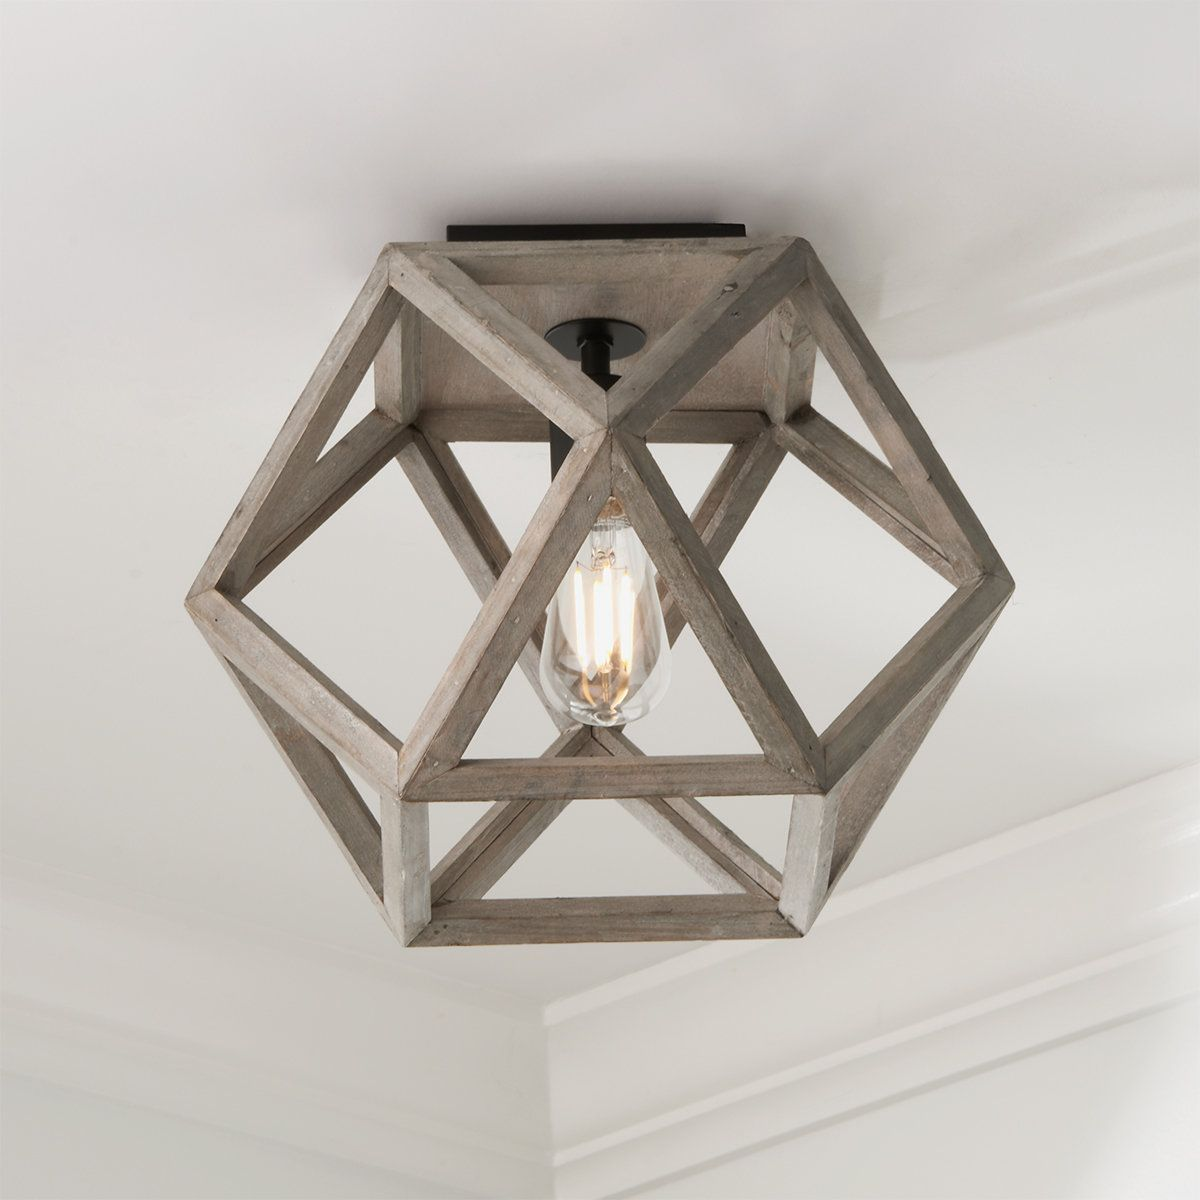 This weathered wood geometric ceiling light exudes laid-back modern style. Lightweight wood with a gray wash finish reminiscent of driftwood will brighten your space and blend right in with  your coastal, lodge or eclectic home. Character defining variation in the finish is to be expected with this natural wood piece.